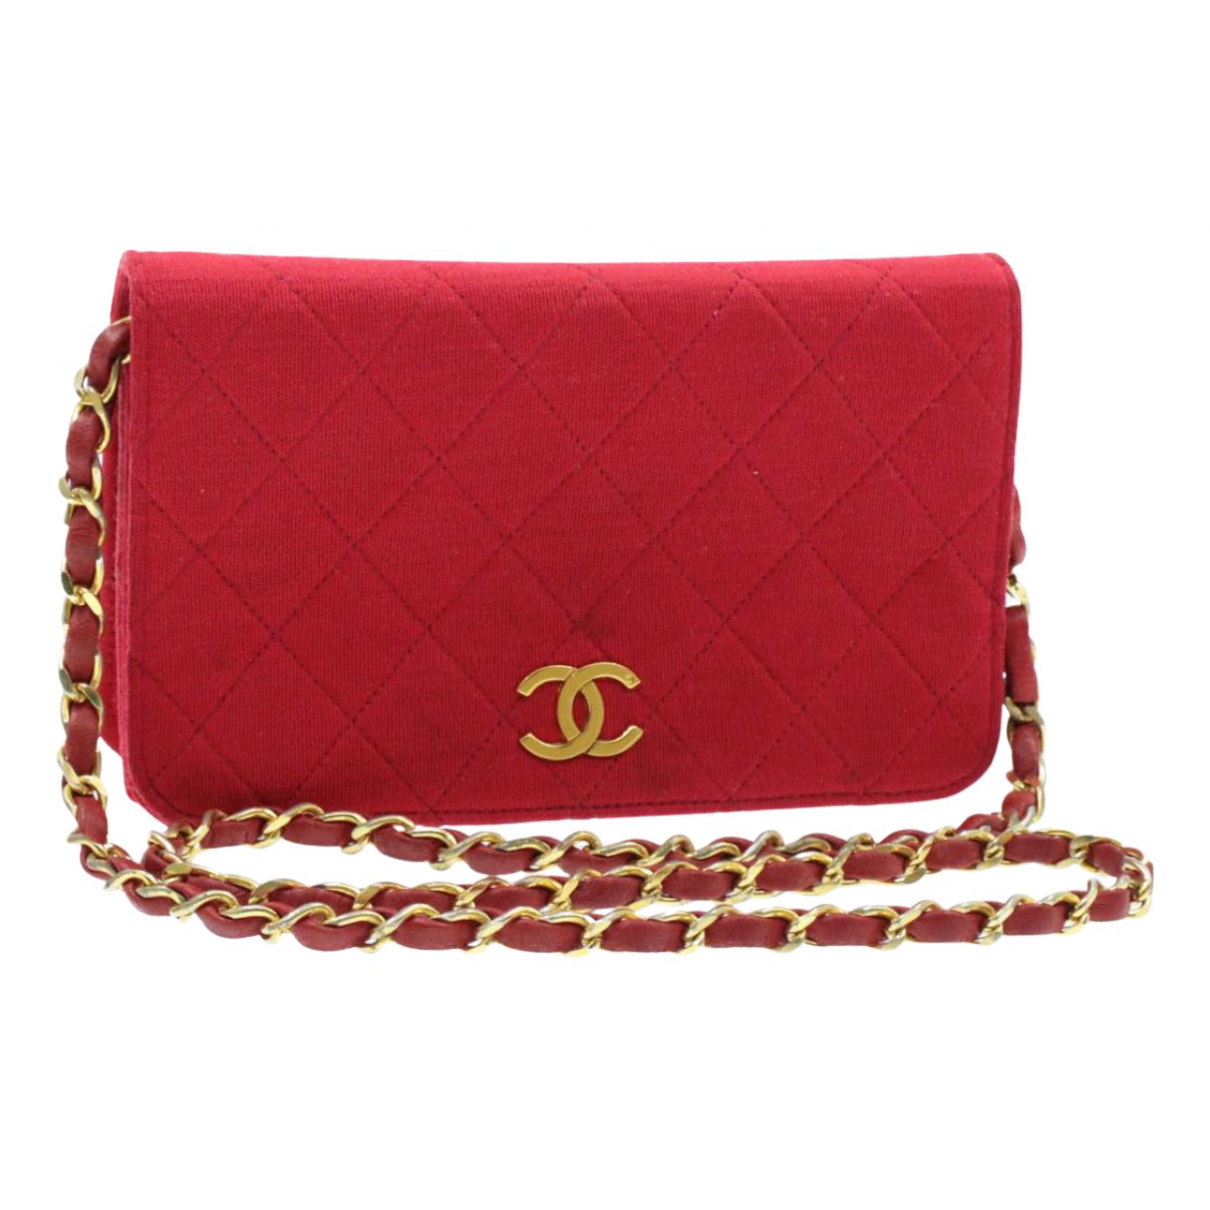 Chanel Wallet on Chain Red Cloth Clutch bag for Women N